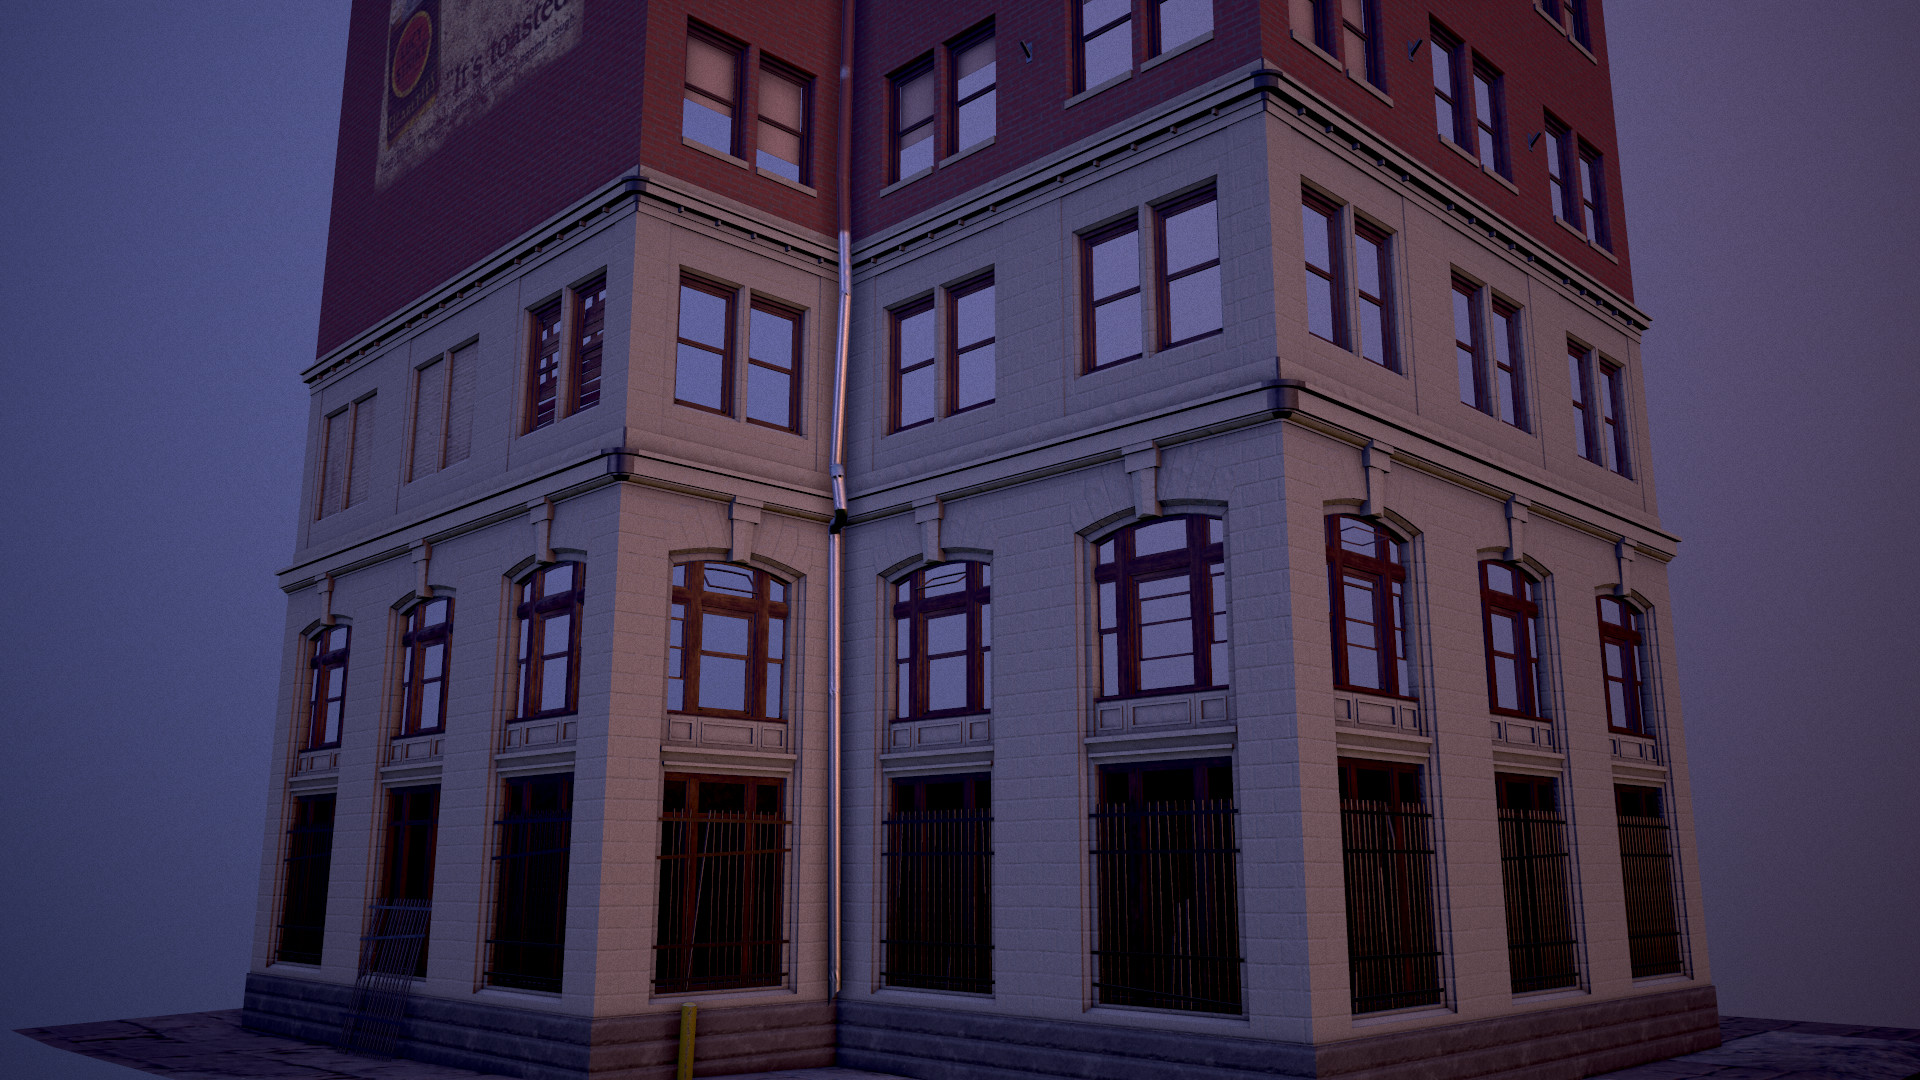 Street-view of the building, rendered in Marmoset Toolbag